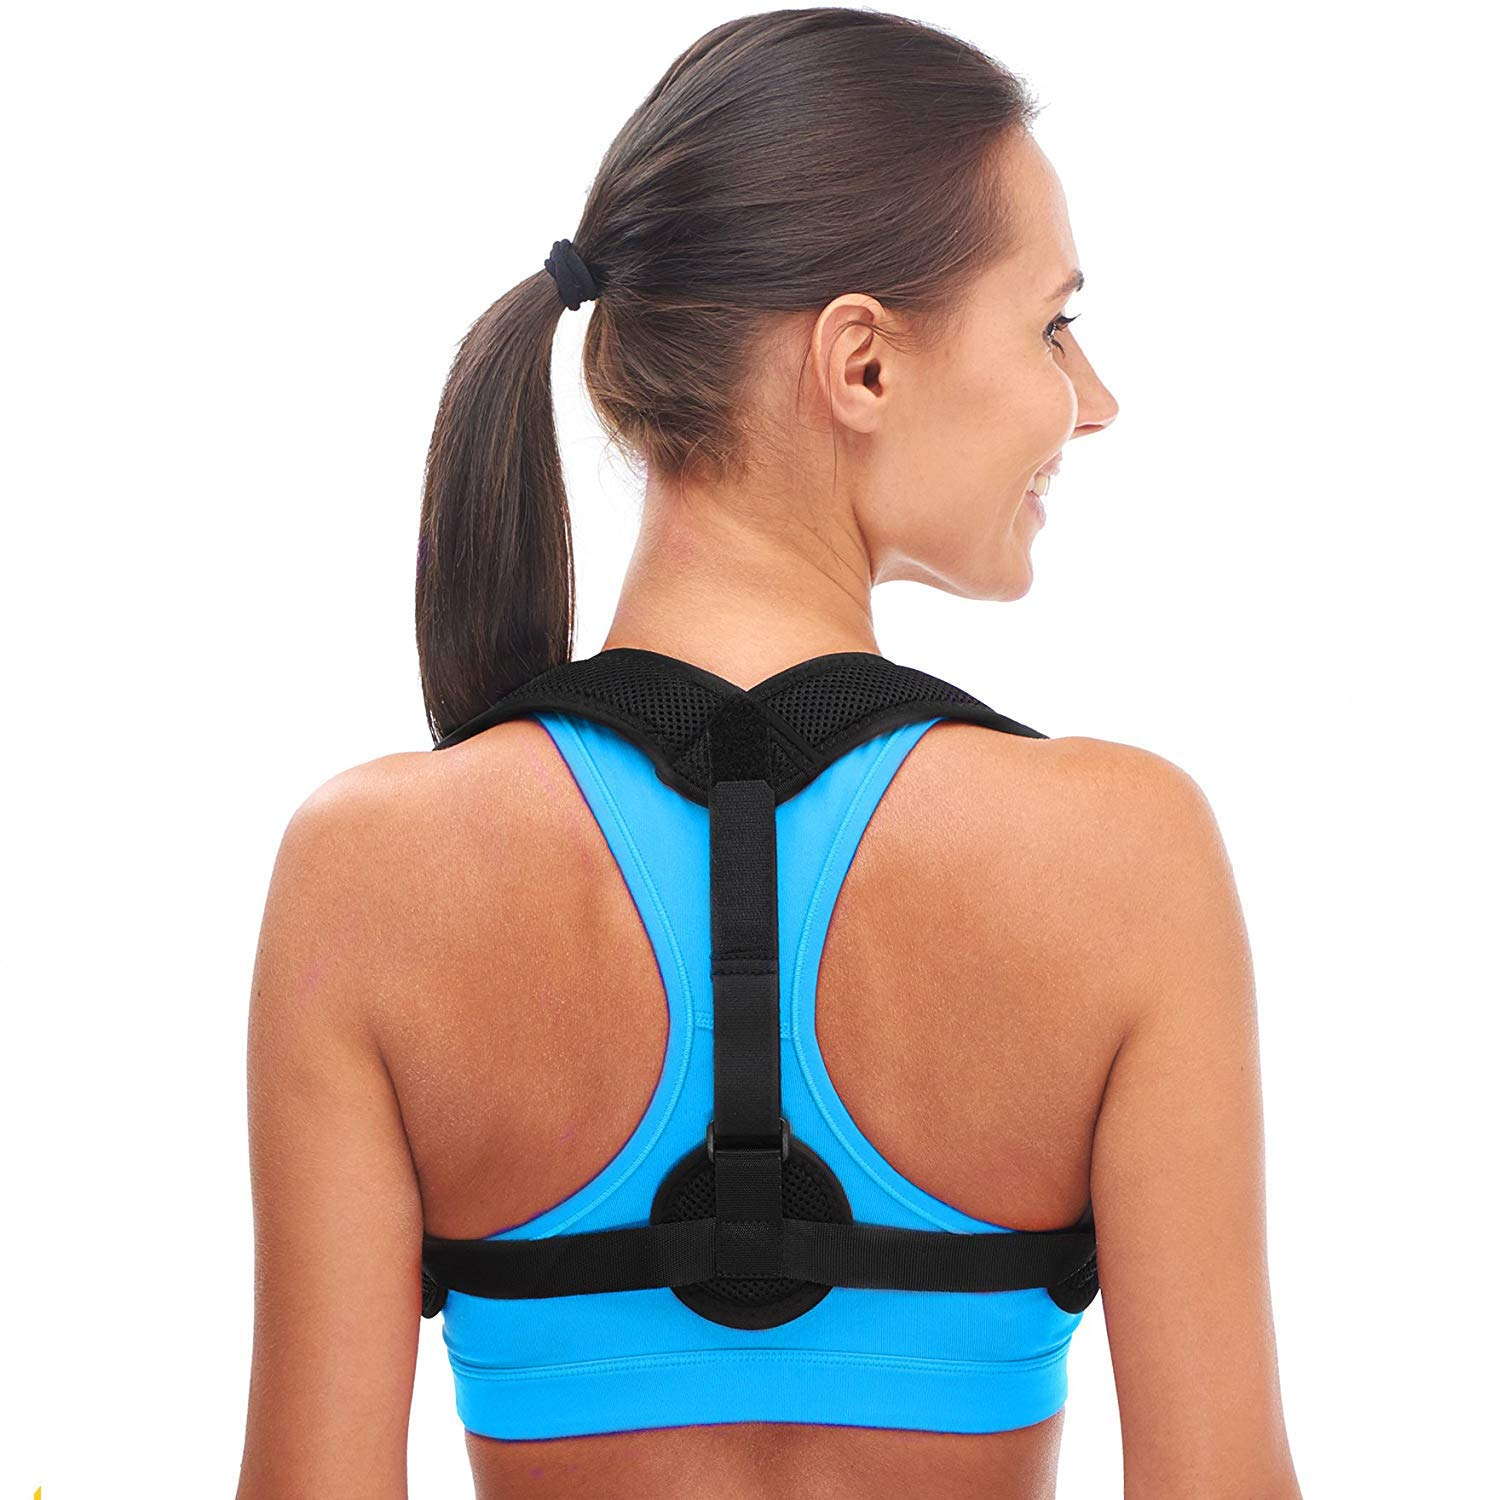 Xterra Paddle Boards >> Andego Back Posture Corrector for Women & Men - Effective ...